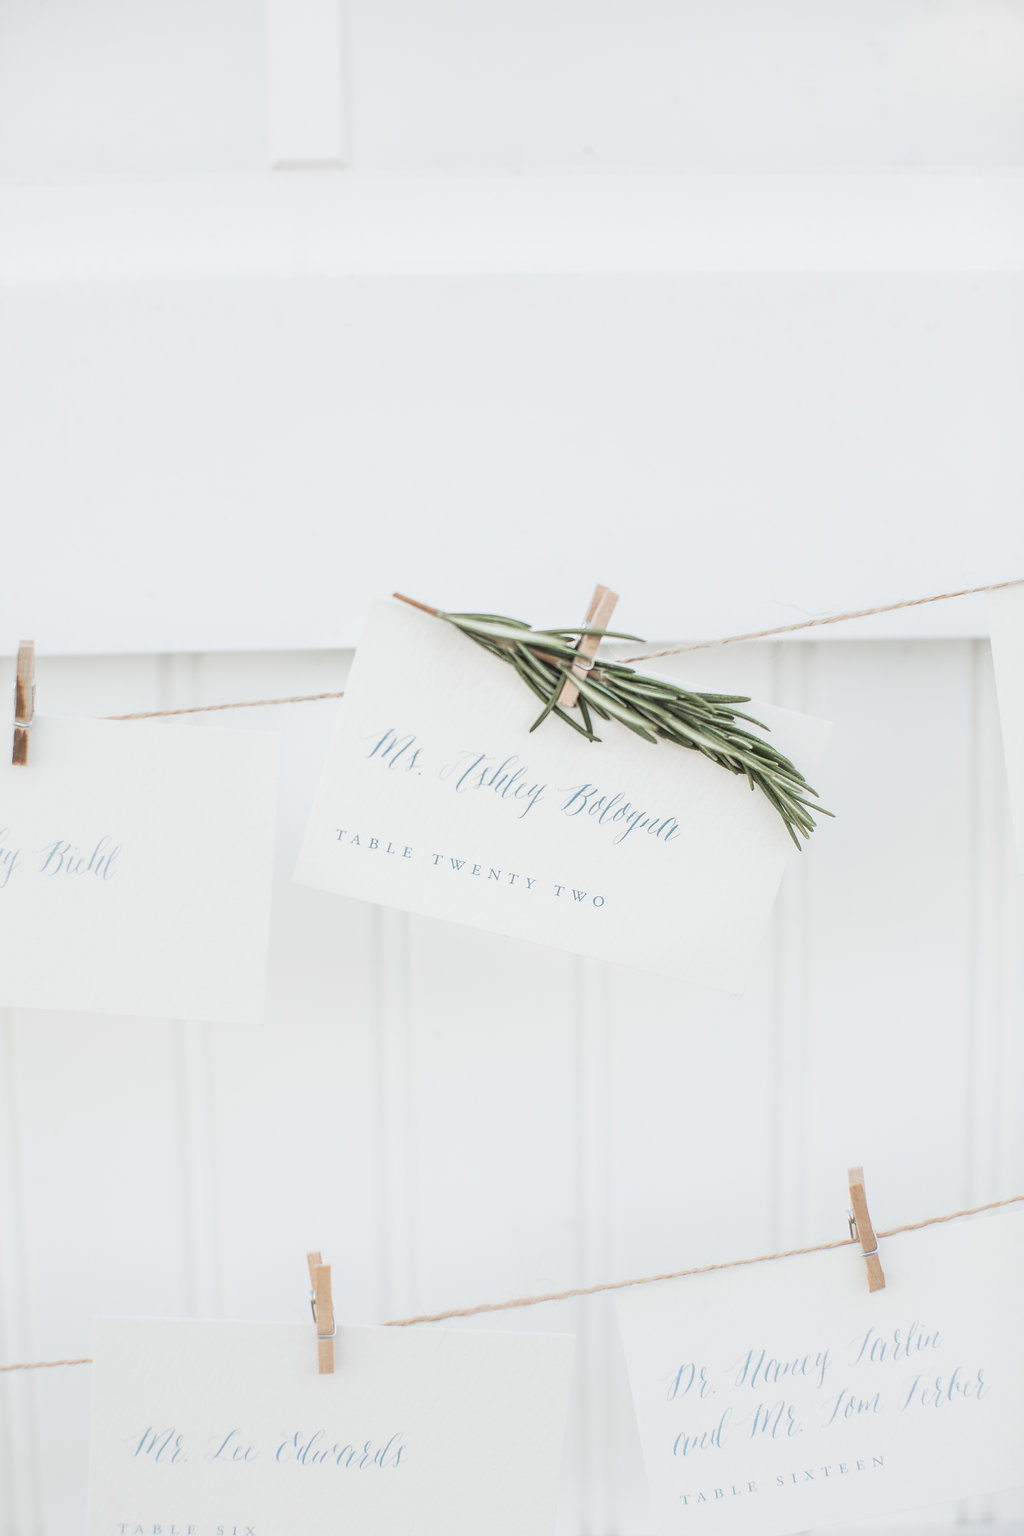 Monica-Relyea-Events-Kelsey-Combe-Photography-Dana-and-Mark-South-Farms-wedding-morris-connecticut-barn-tent-jewish-farm-country-litchfield-county476